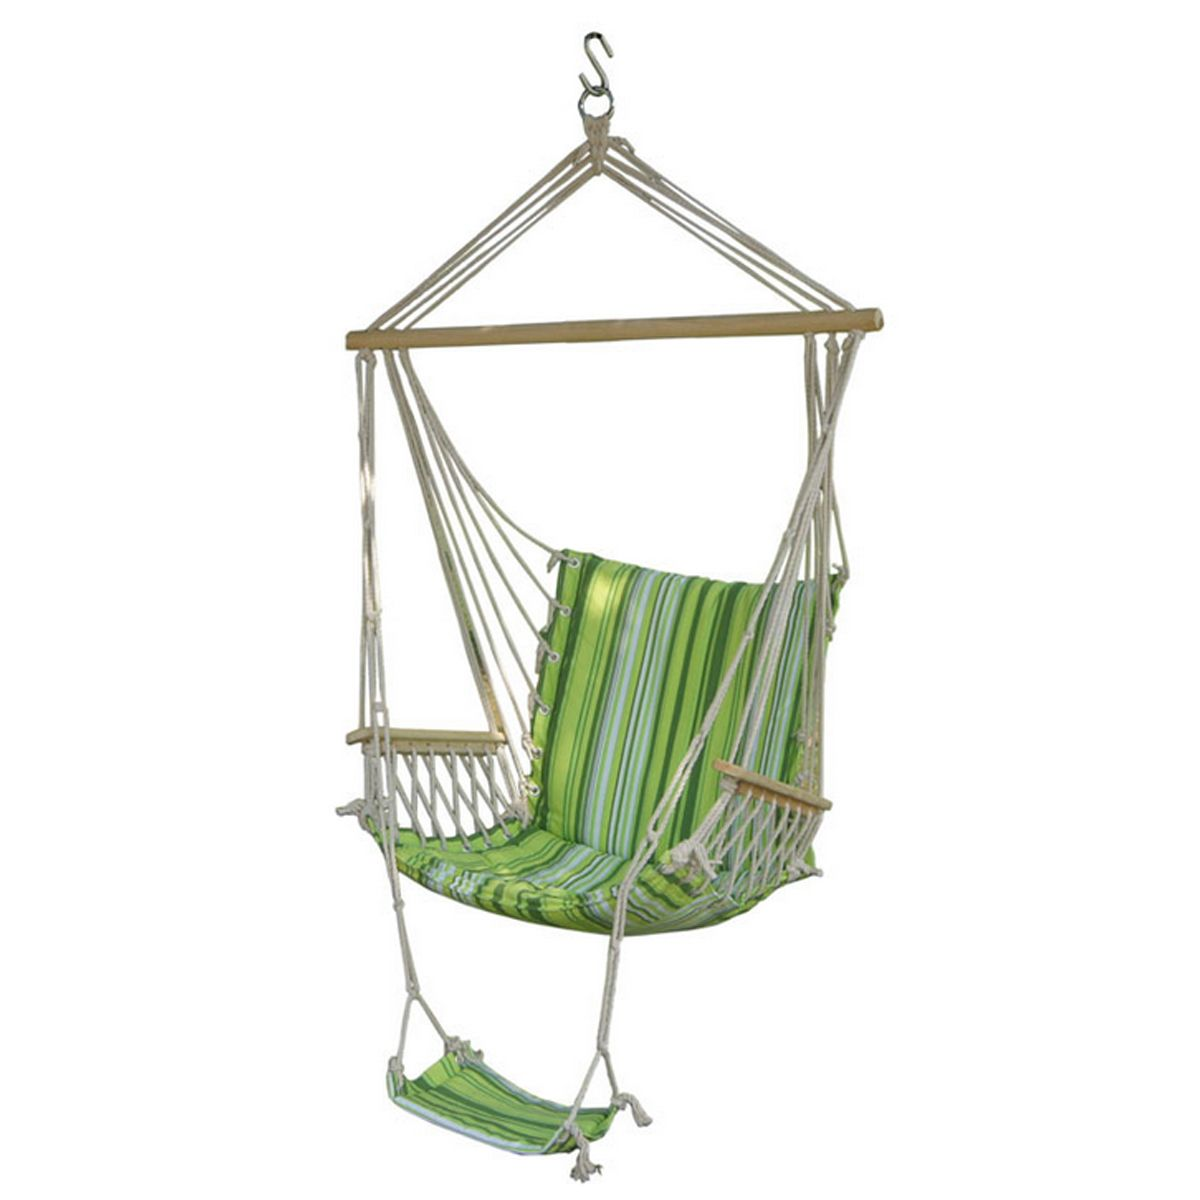 Ipreeâue outdoor canvas swing hammock leisure hanging chair garden